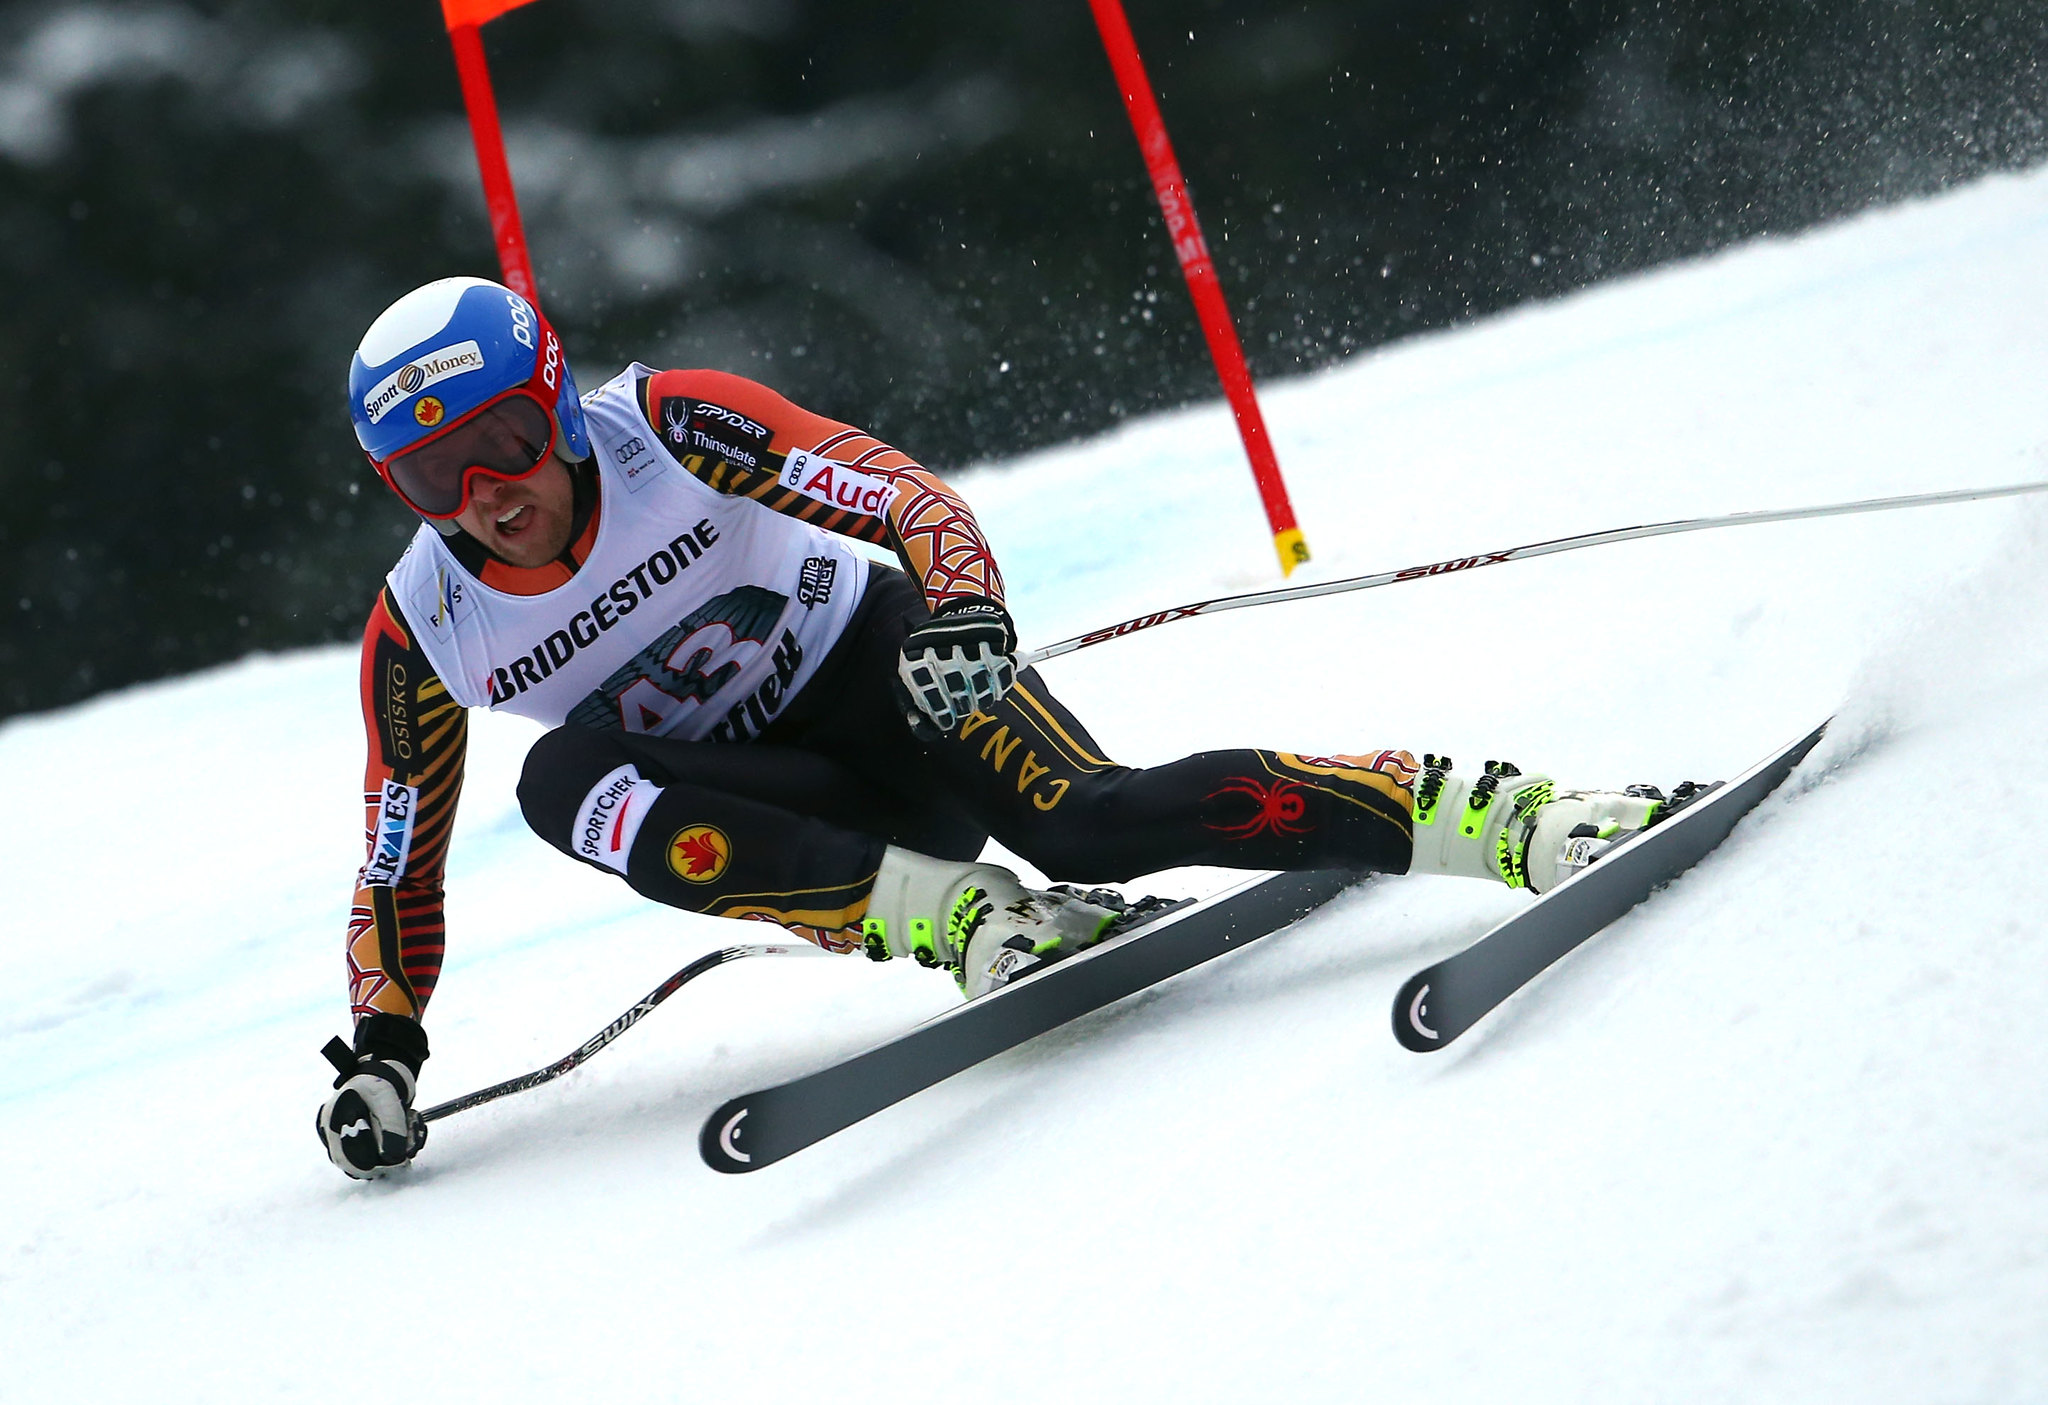 Dustin Cook competing in the downhill at the FIS Alpine World Cup in Kvitfjell, NOR